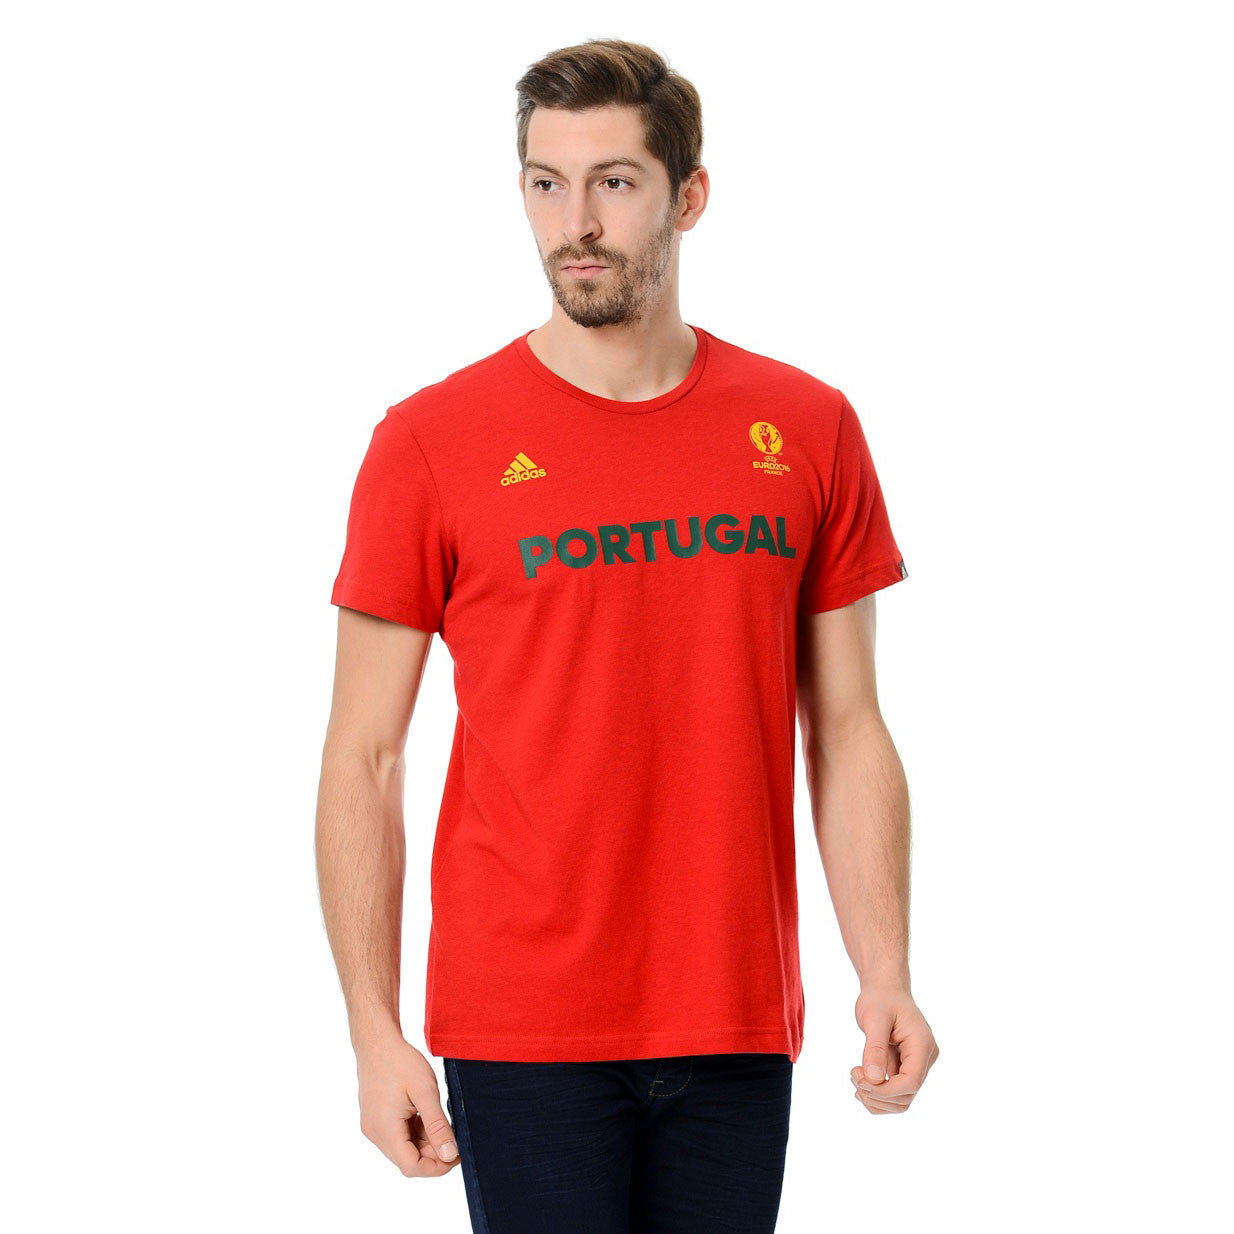 43 x adidas Euro 2016 Portugal Football B Grade T-Shirts rrp£25 Only £2.99 each - IN STOCK IMMEDIATE DELIVERY